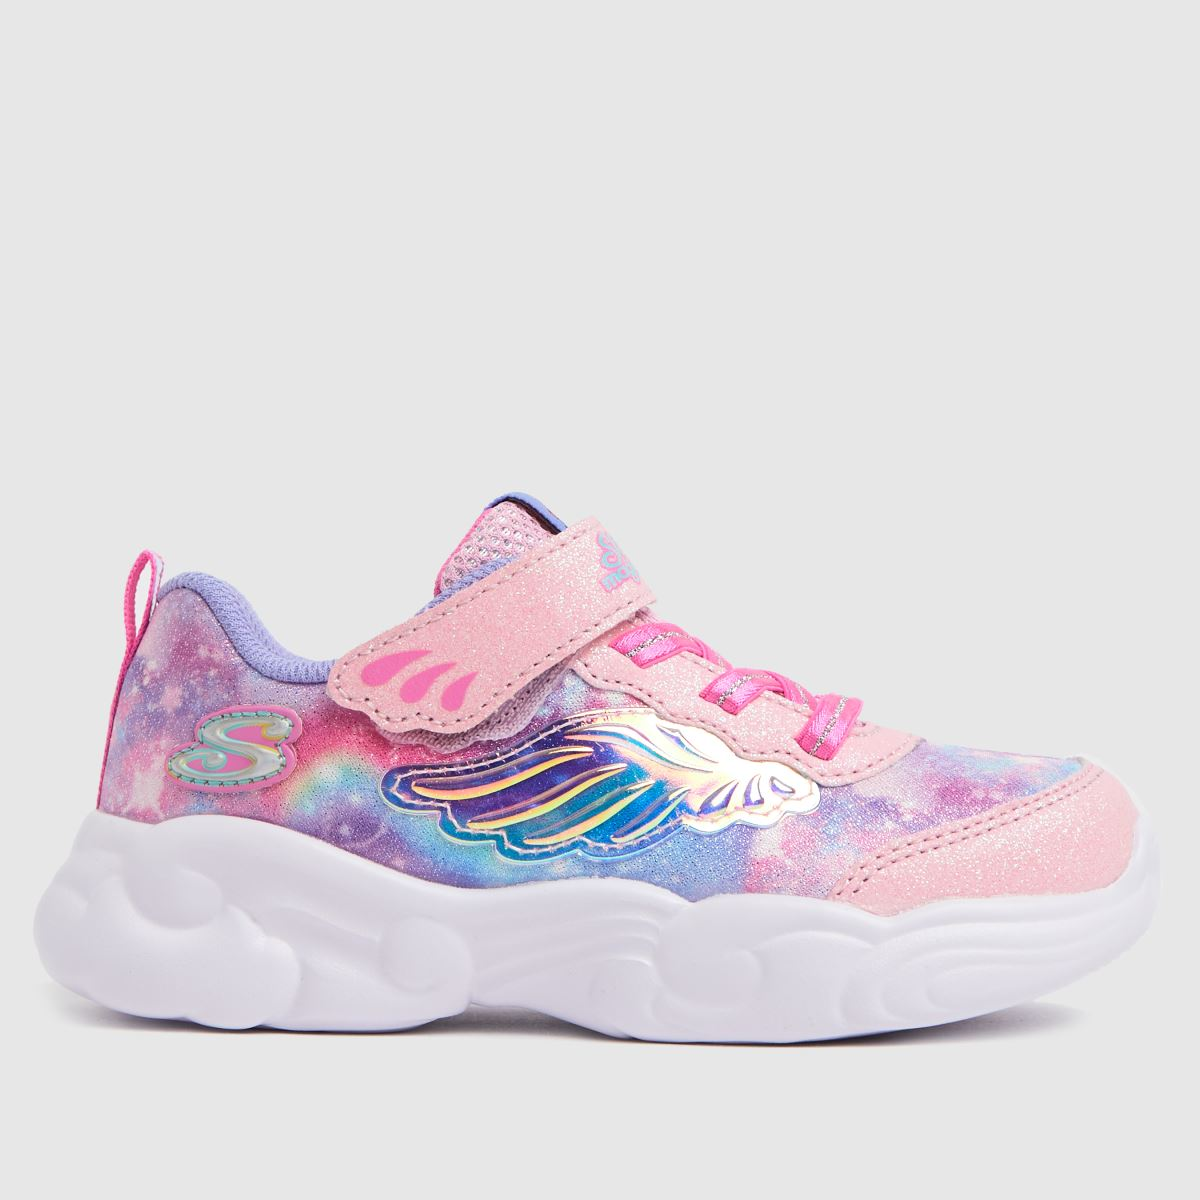 SKECHERS Pale Pink Unicorn Storm Trainers Toddler